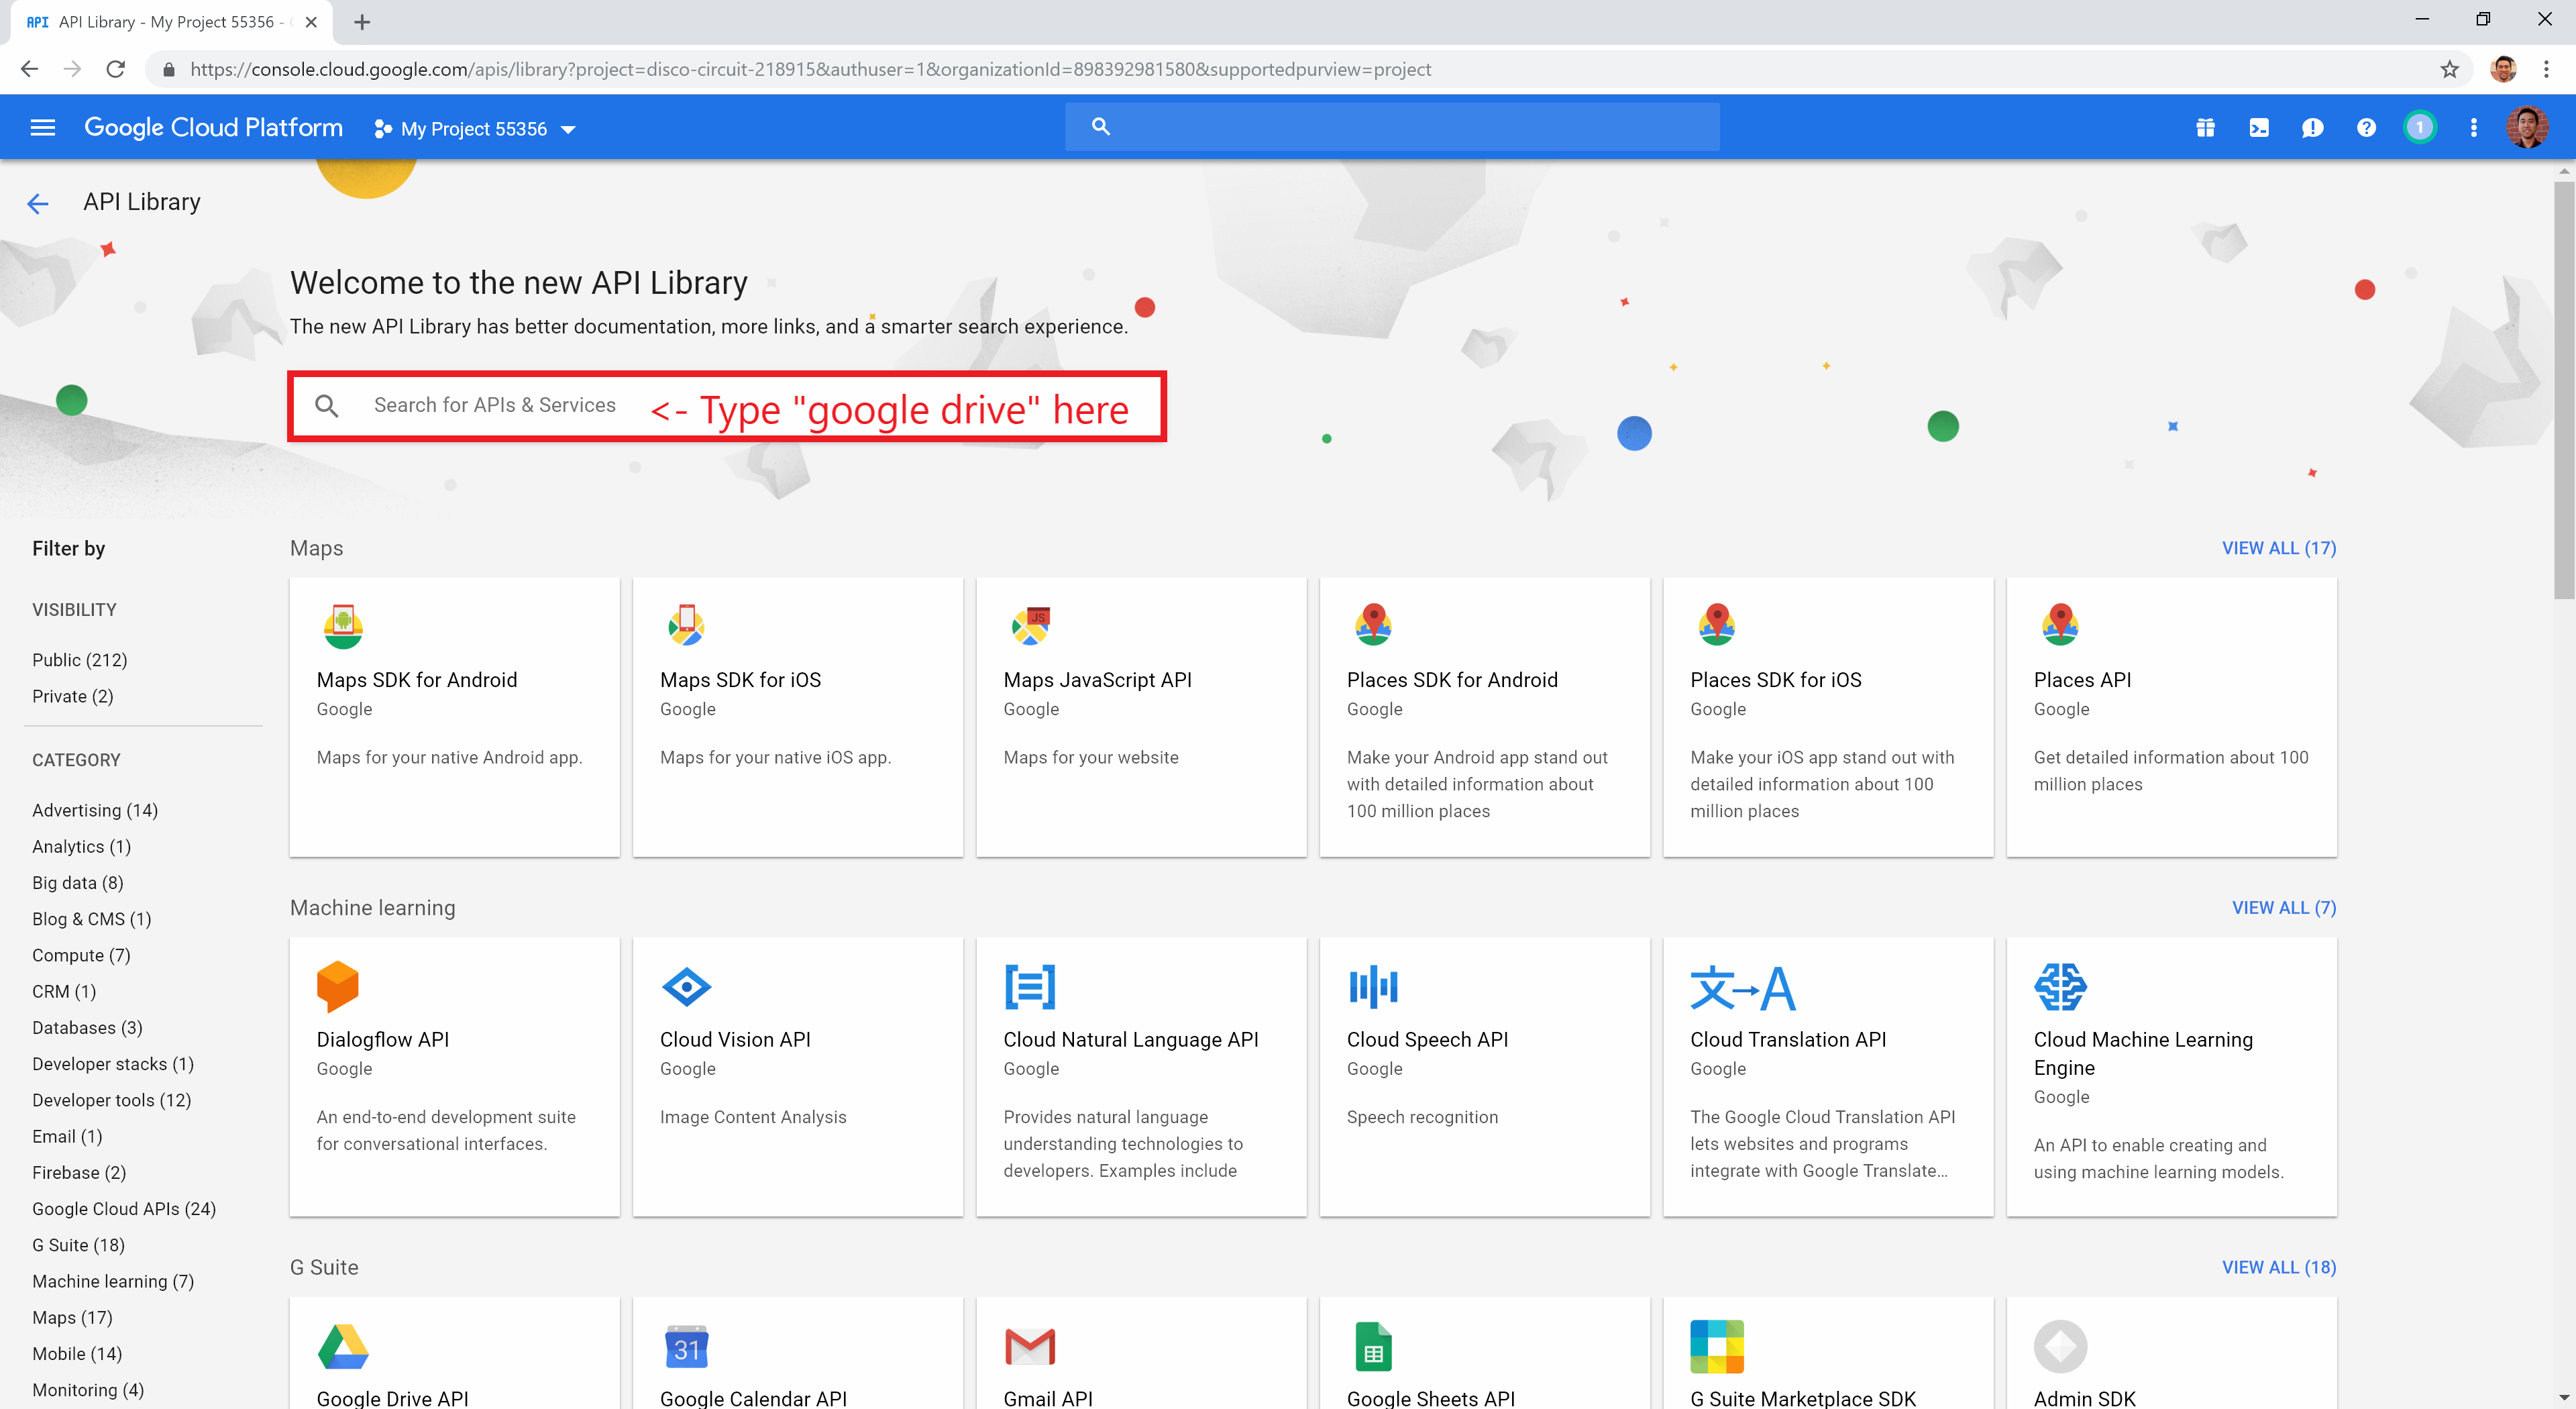 A Step-by-Step Guide on Downloading Your Google Drive Files